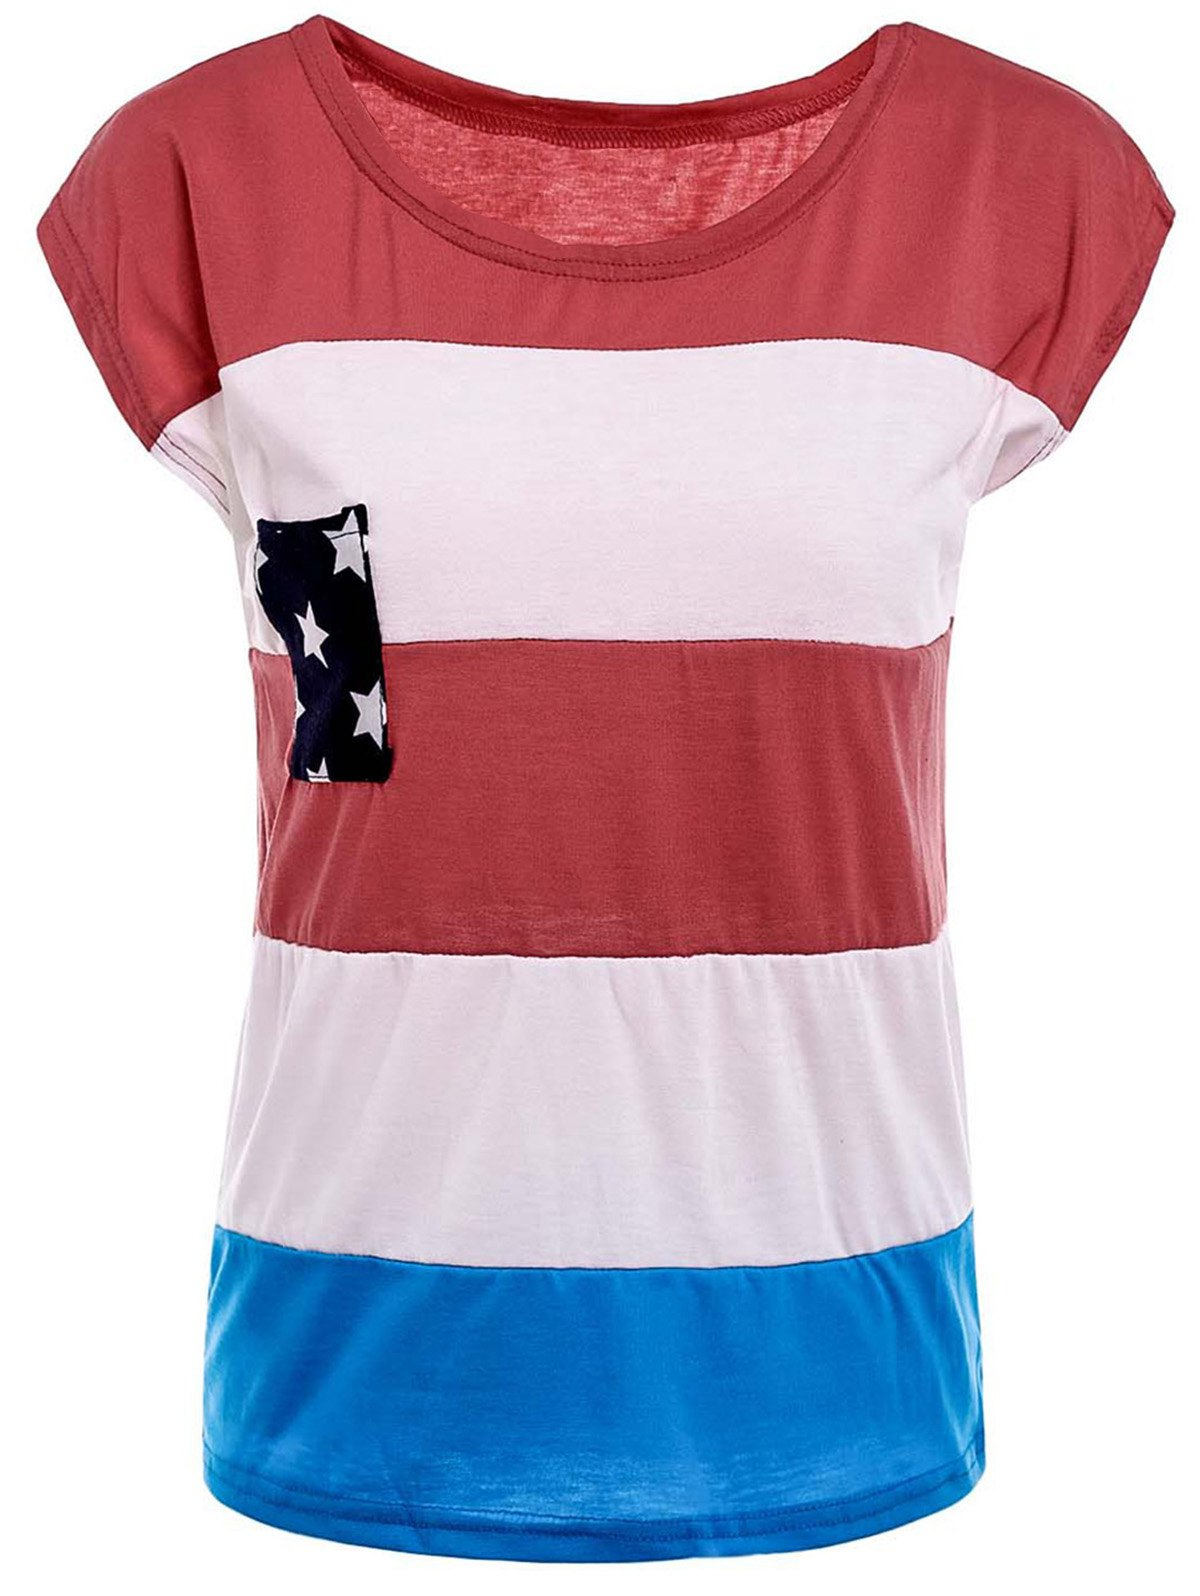 Stylish Round Neck American Flag Print Color Block Women's Short Sleeve T-Shirt kyocera dk 591c